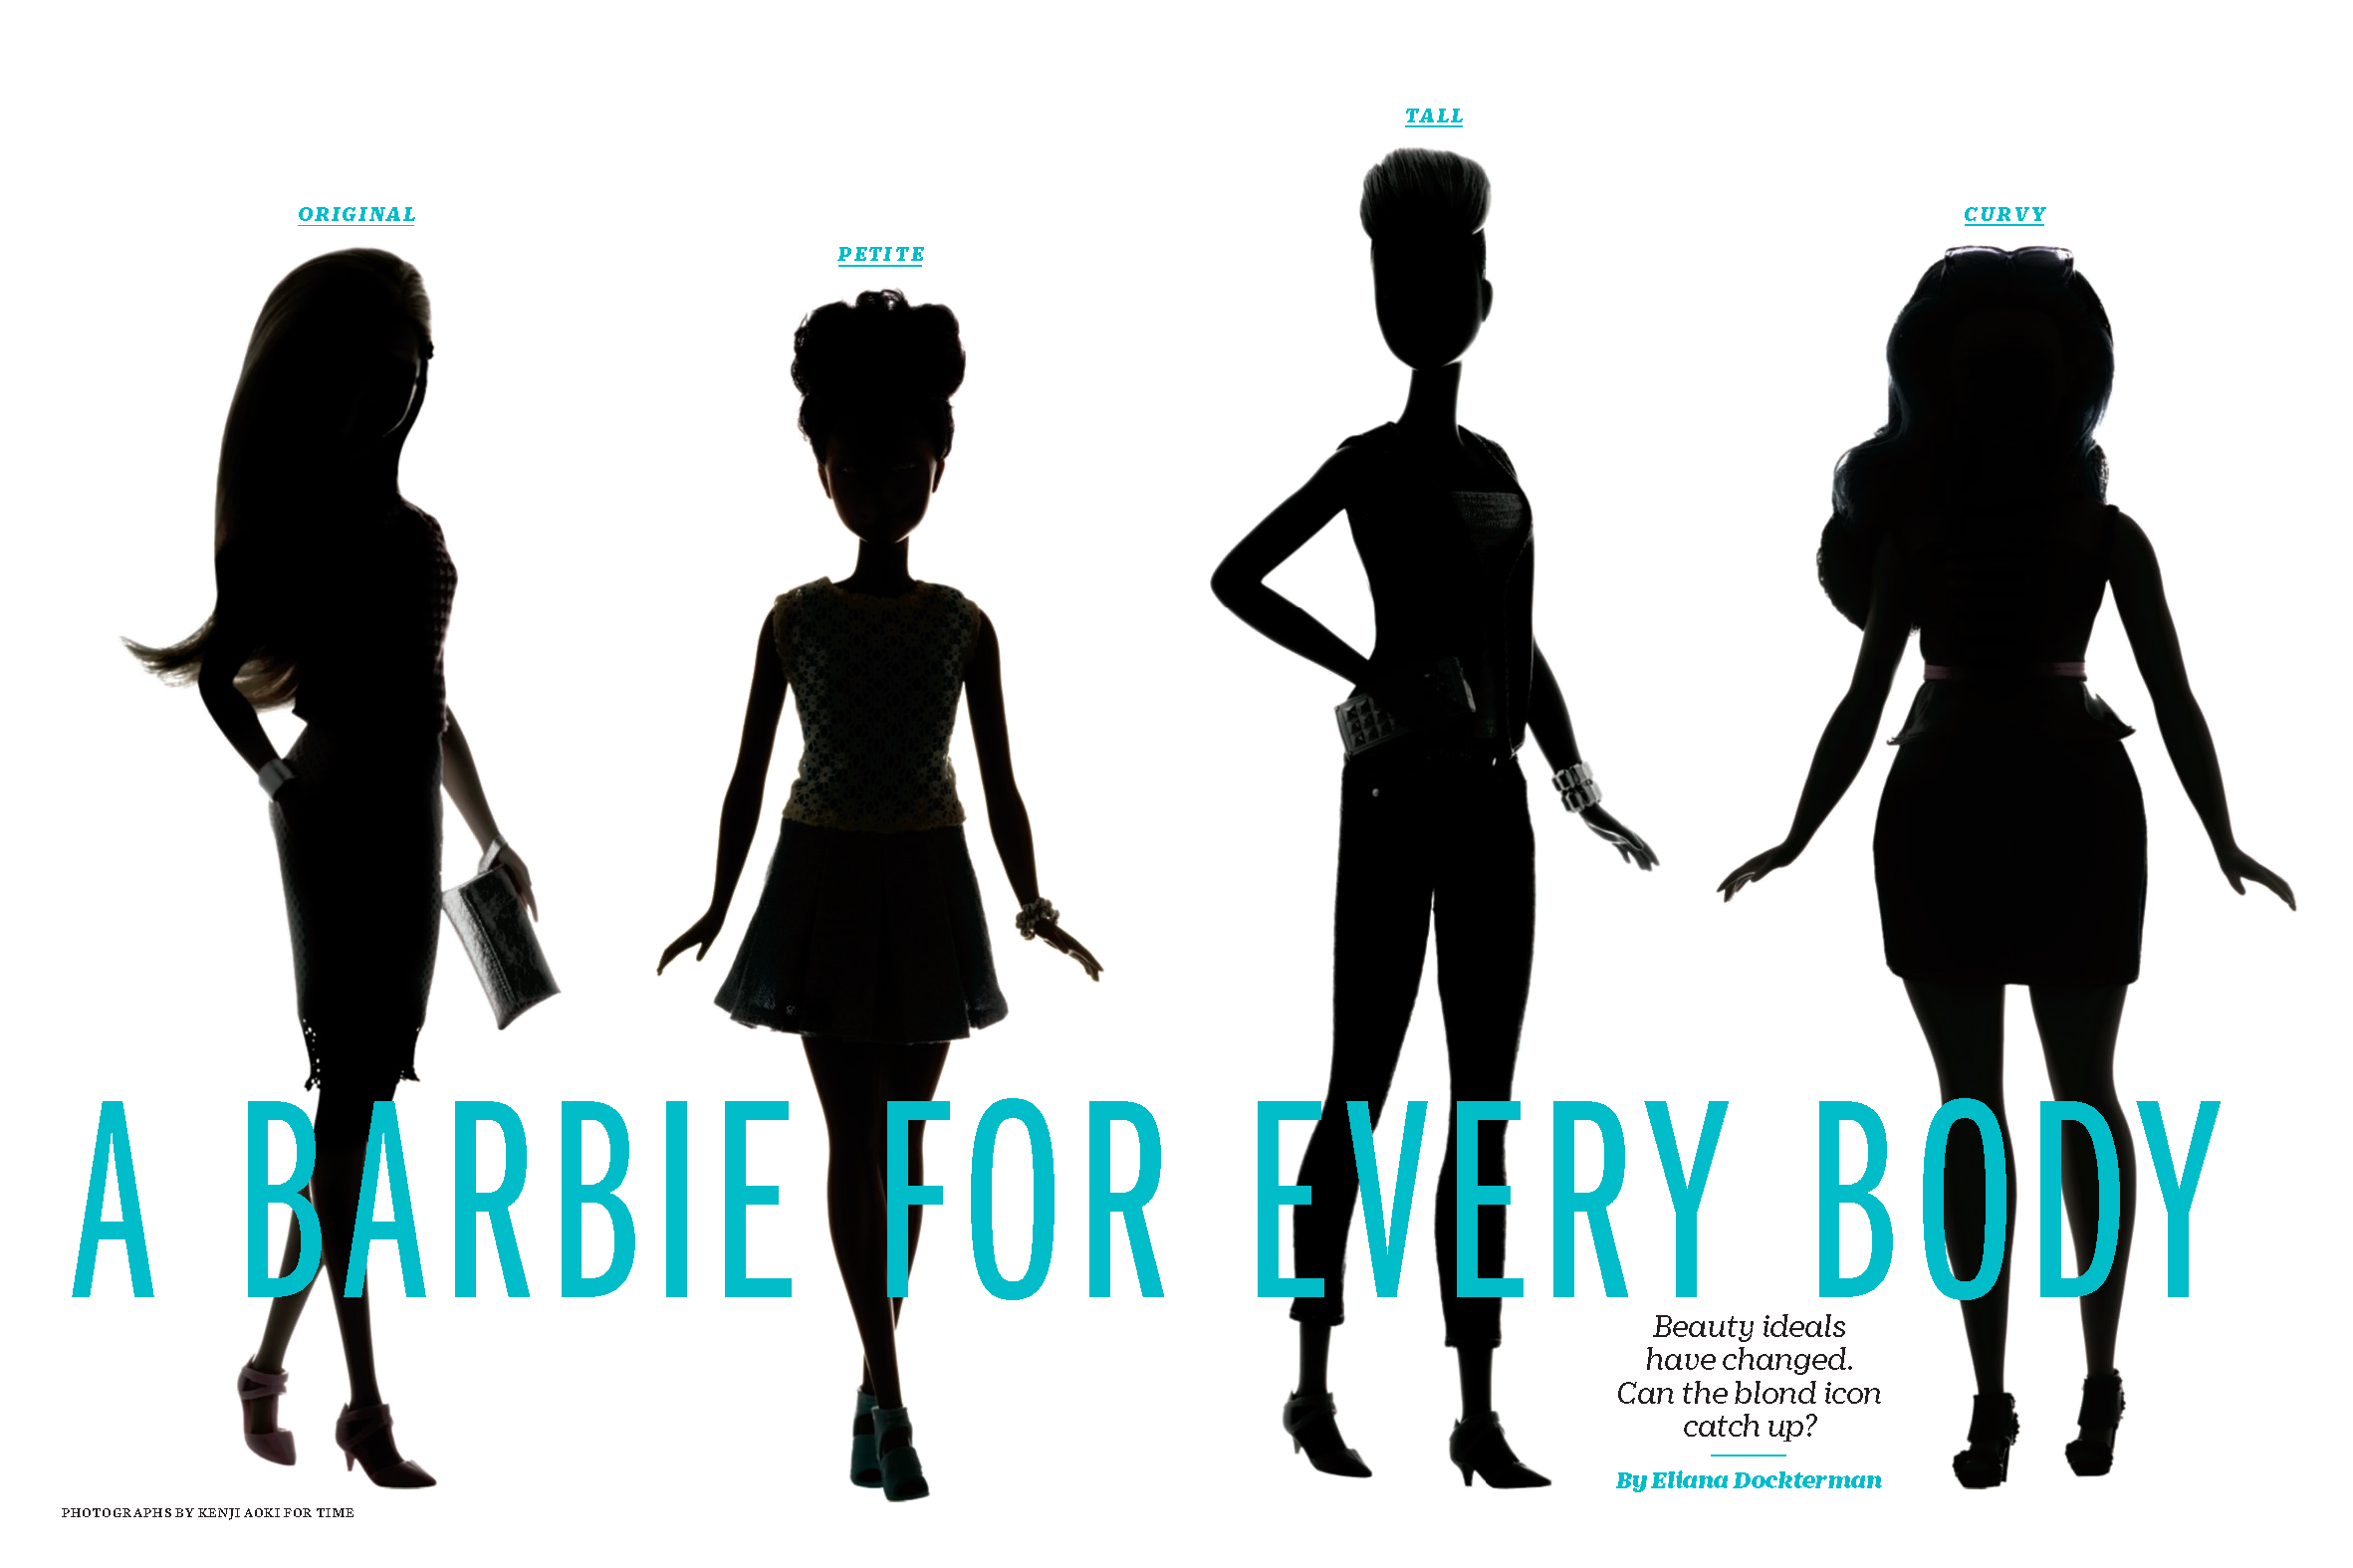 A Barbie for every body